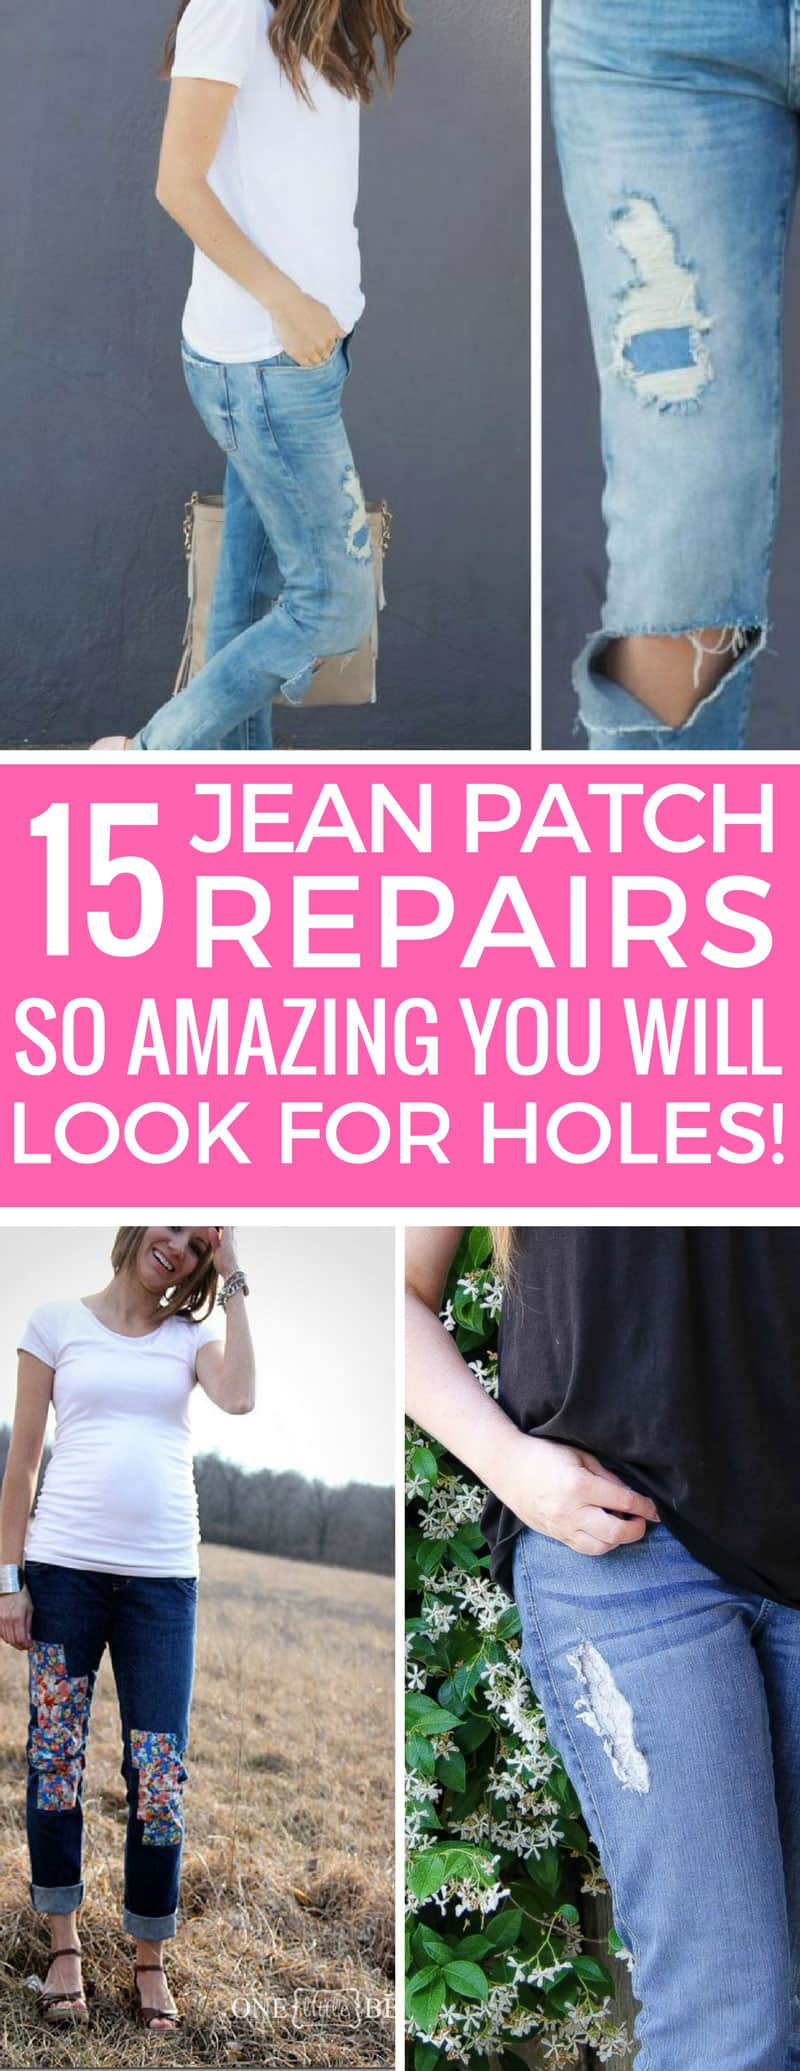 I was about to trash my favorite jeans but thanks to these jean patch repair ideas I'm going to make them look even better! Thanks for sharing!